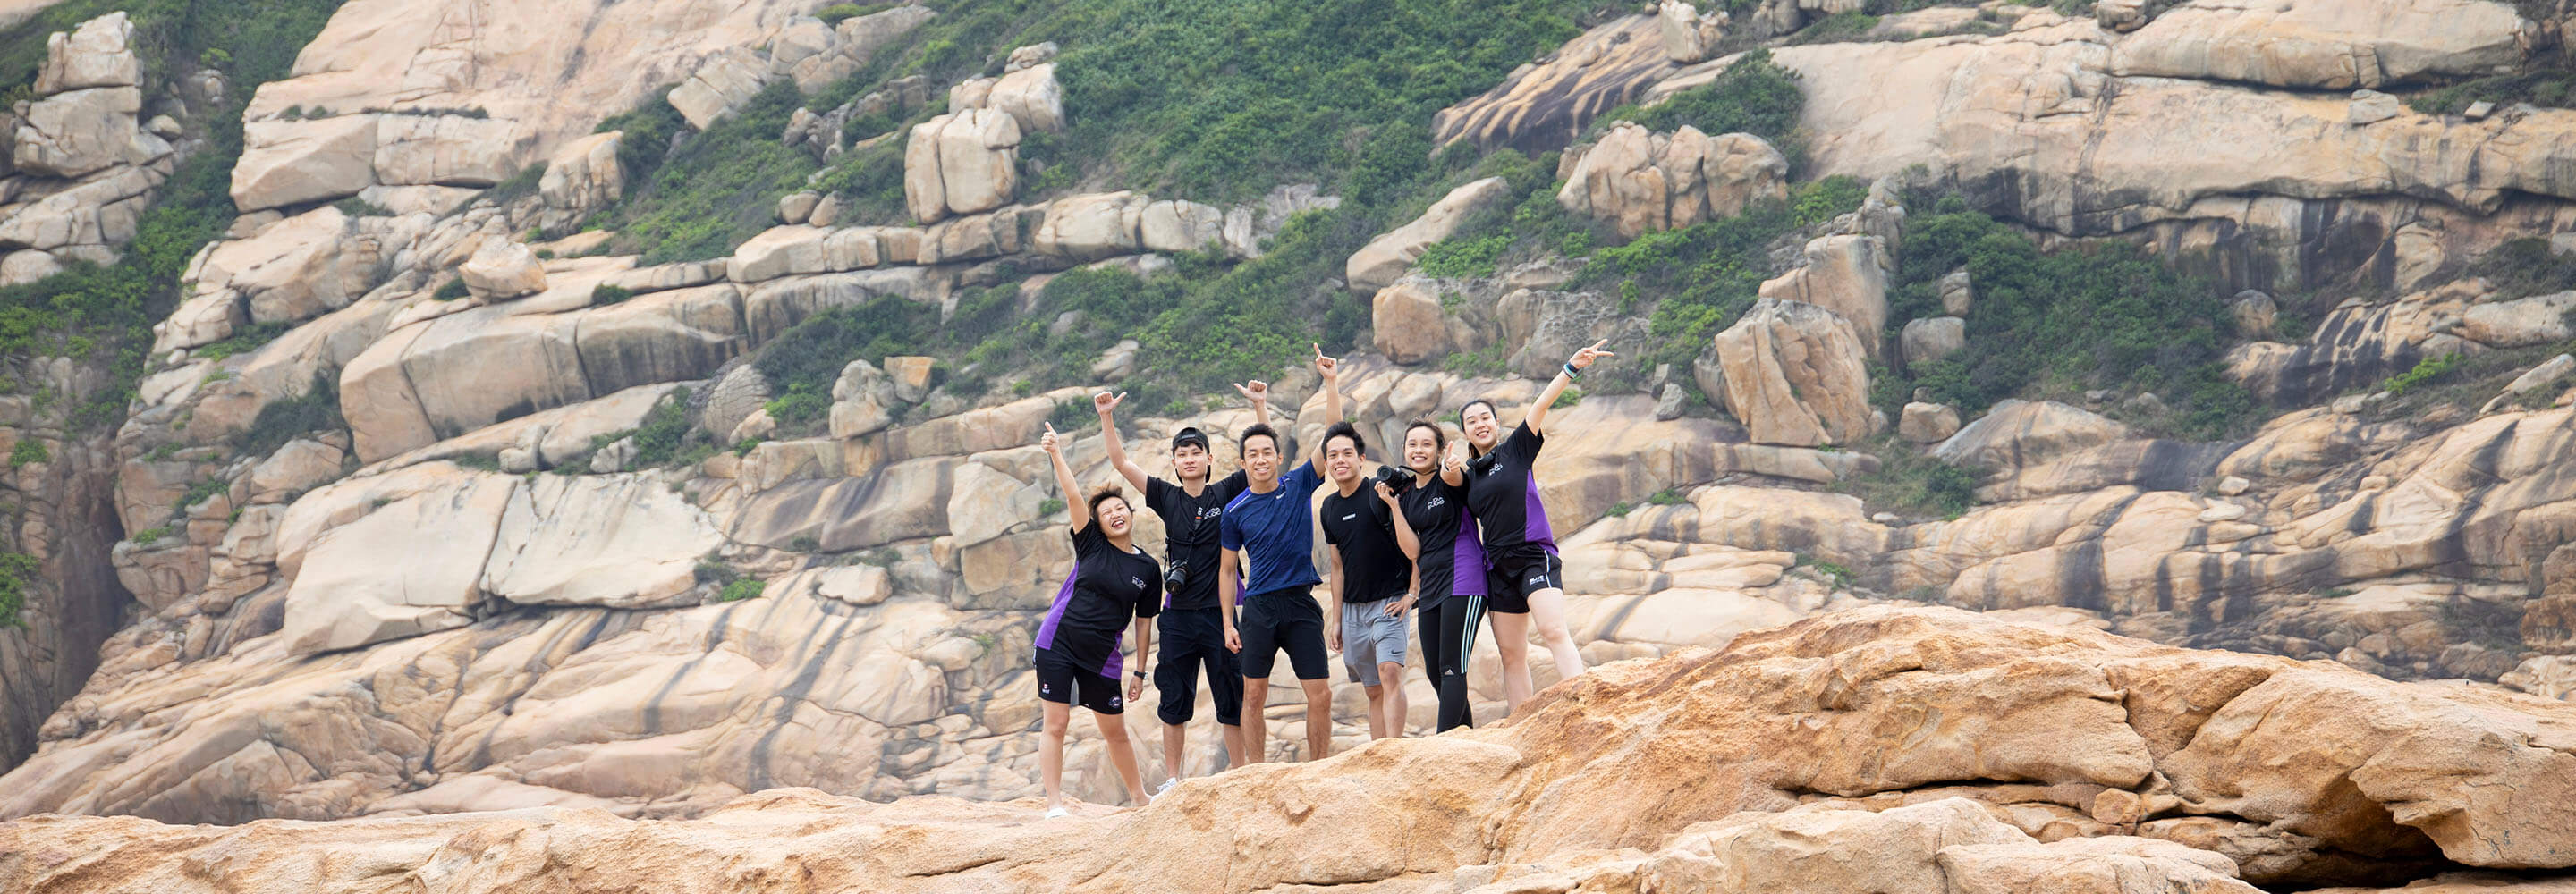 media studio hong kong and rex tso on top of a mountain shooting and film experience